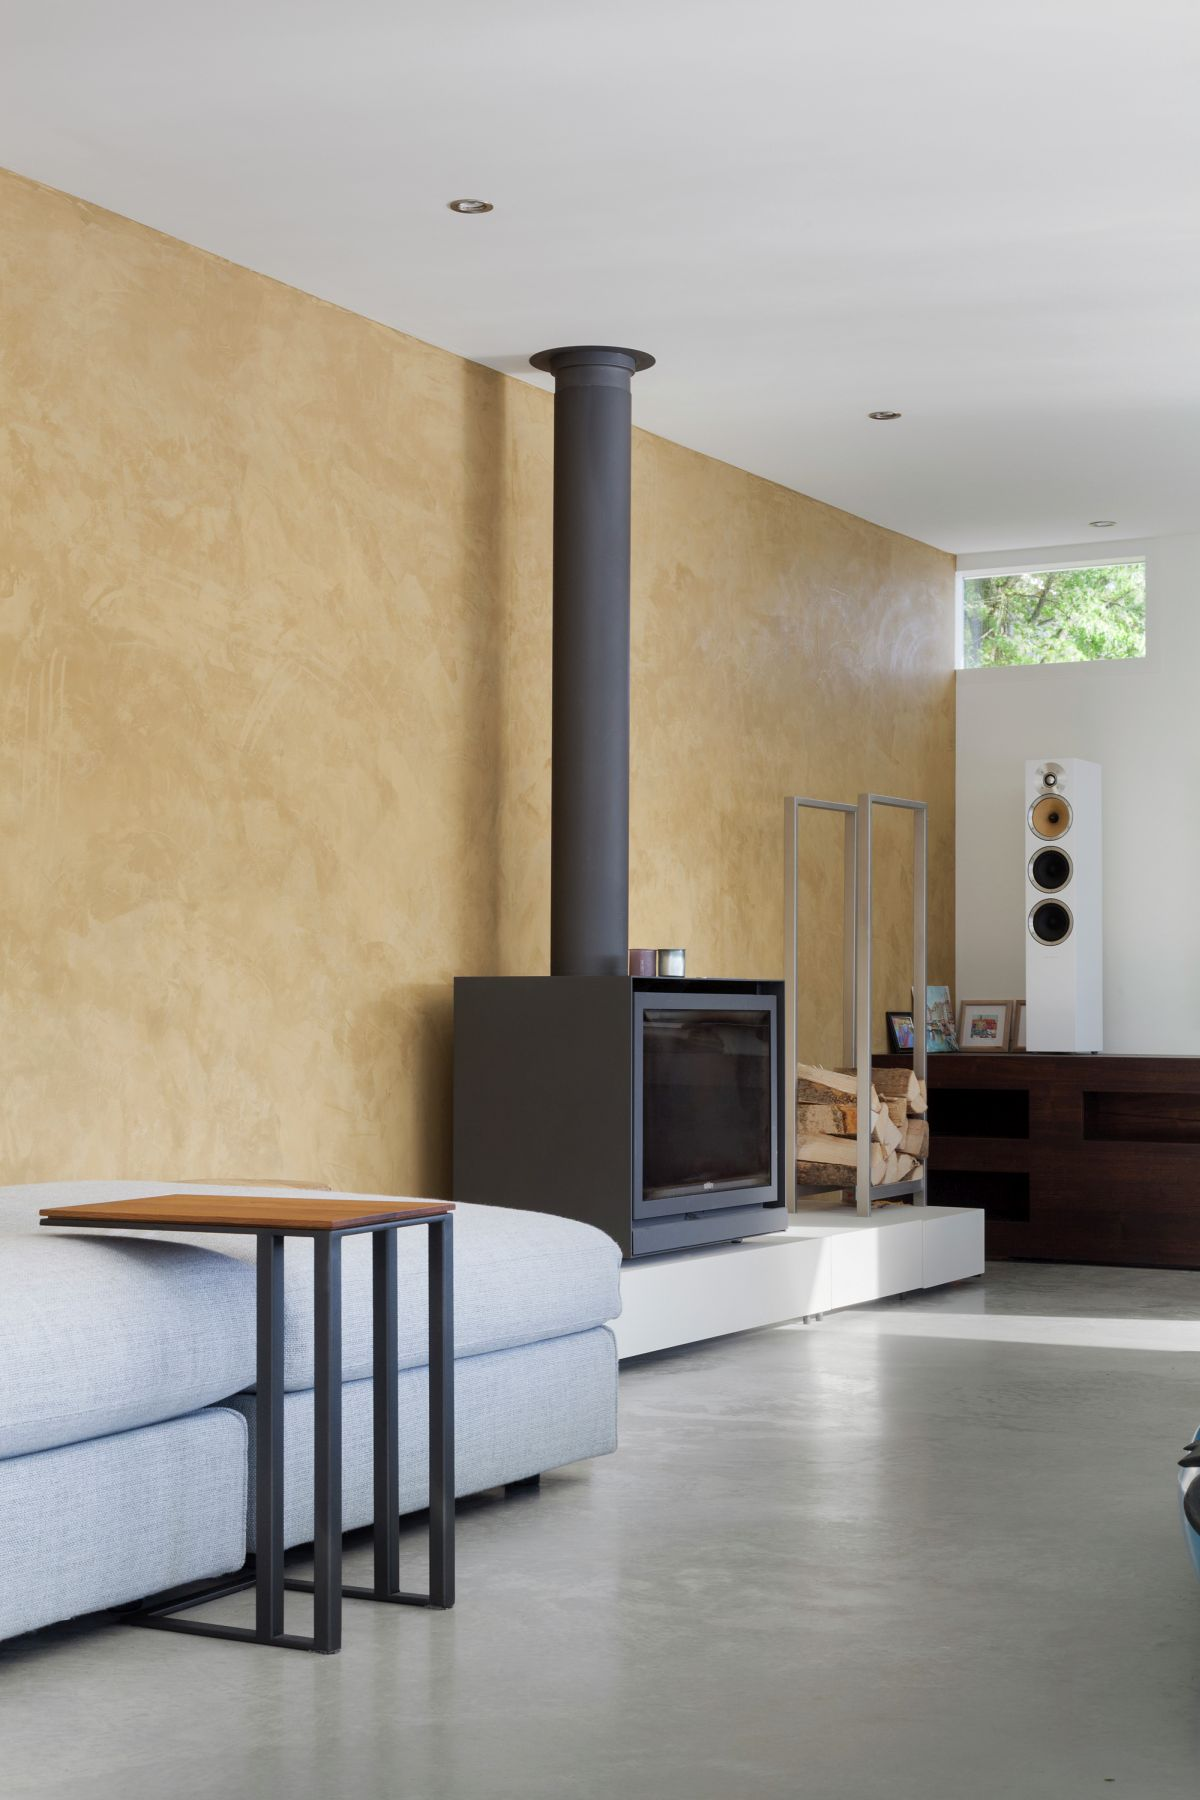 Floating Amsterdam home fireplace in living area